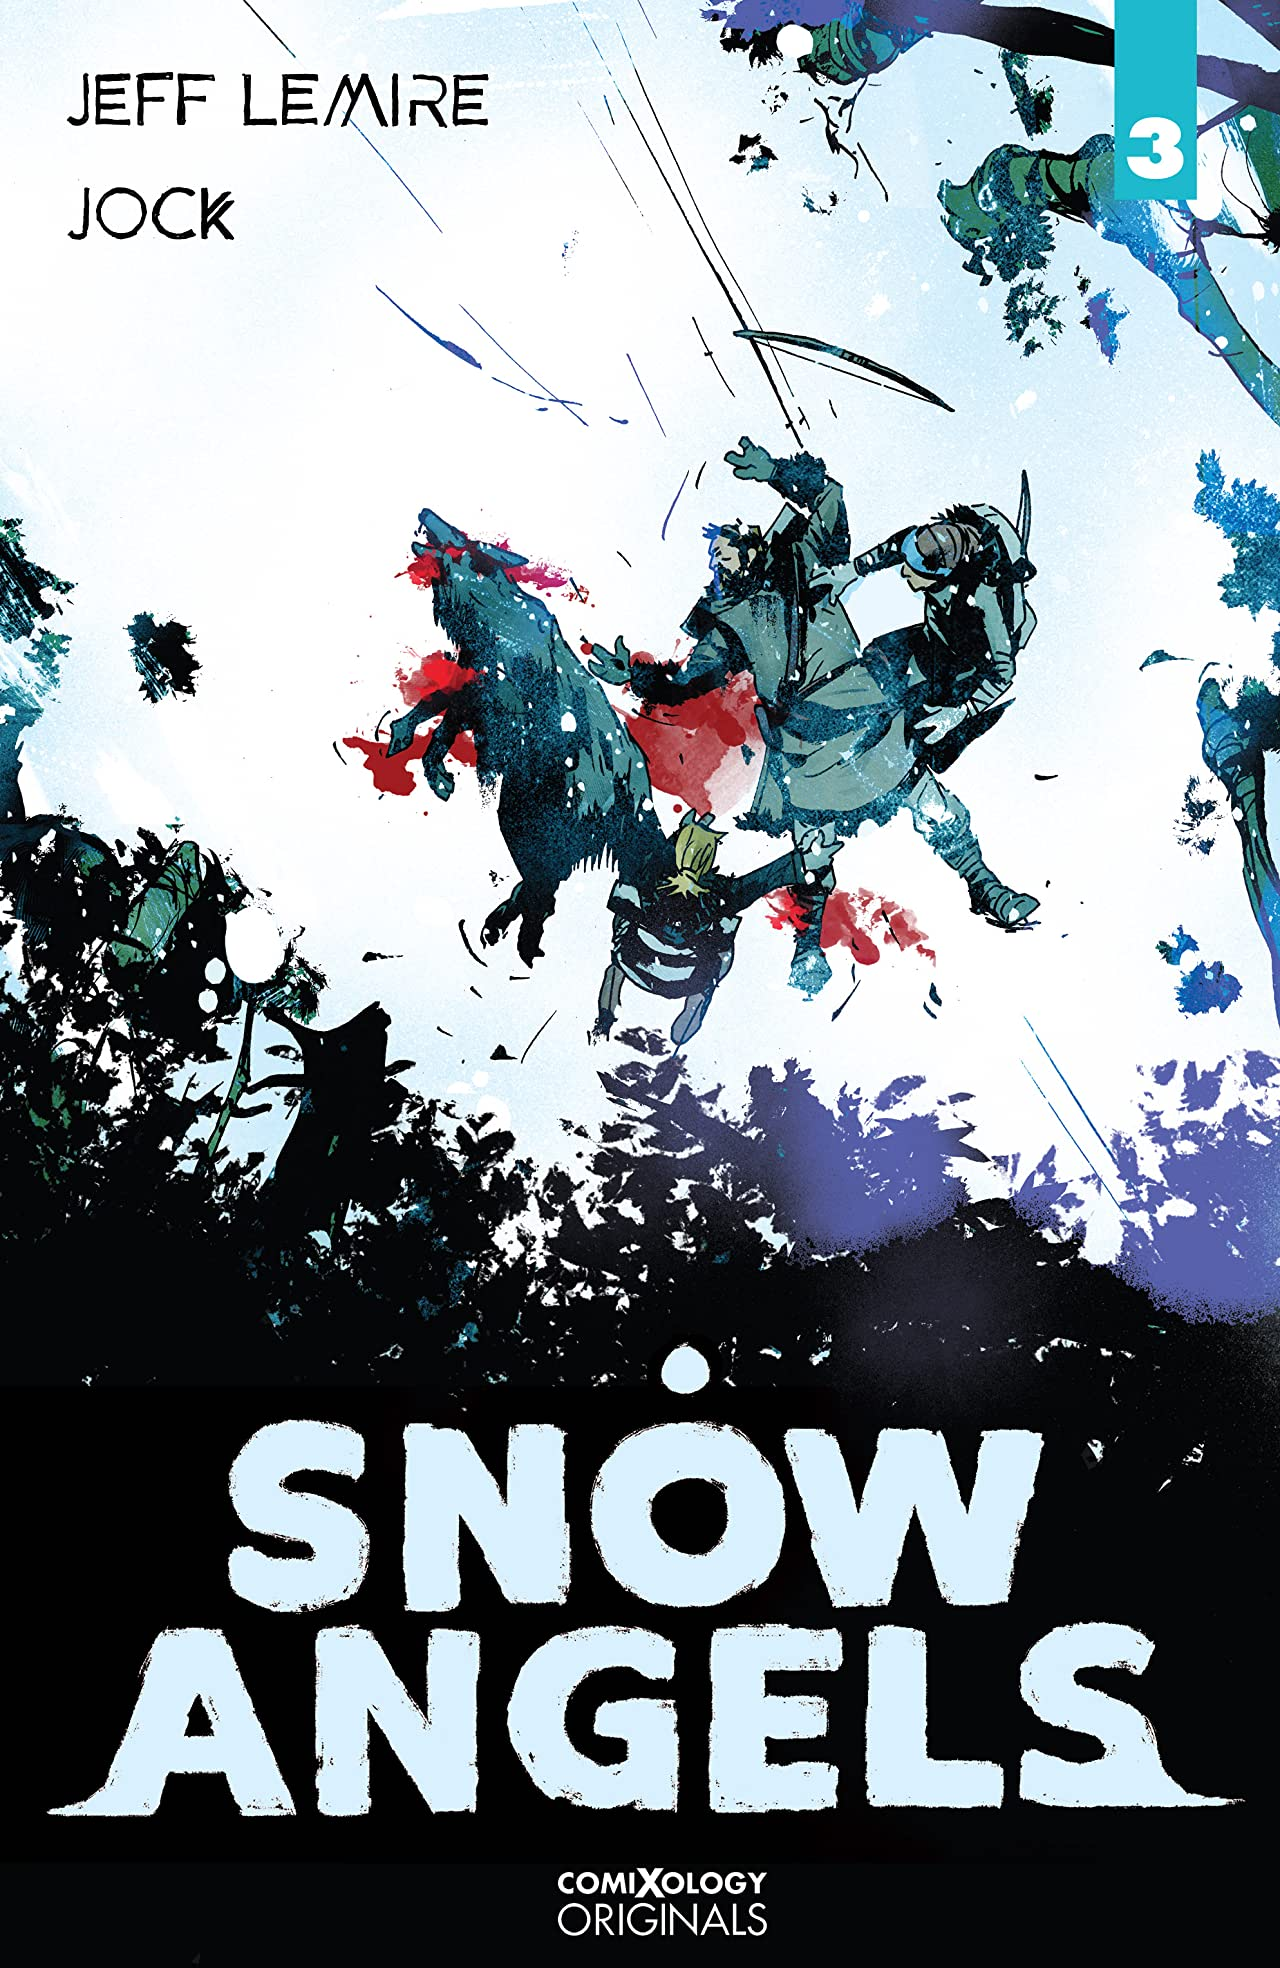 Snow Angels (comiXology Originals) #3